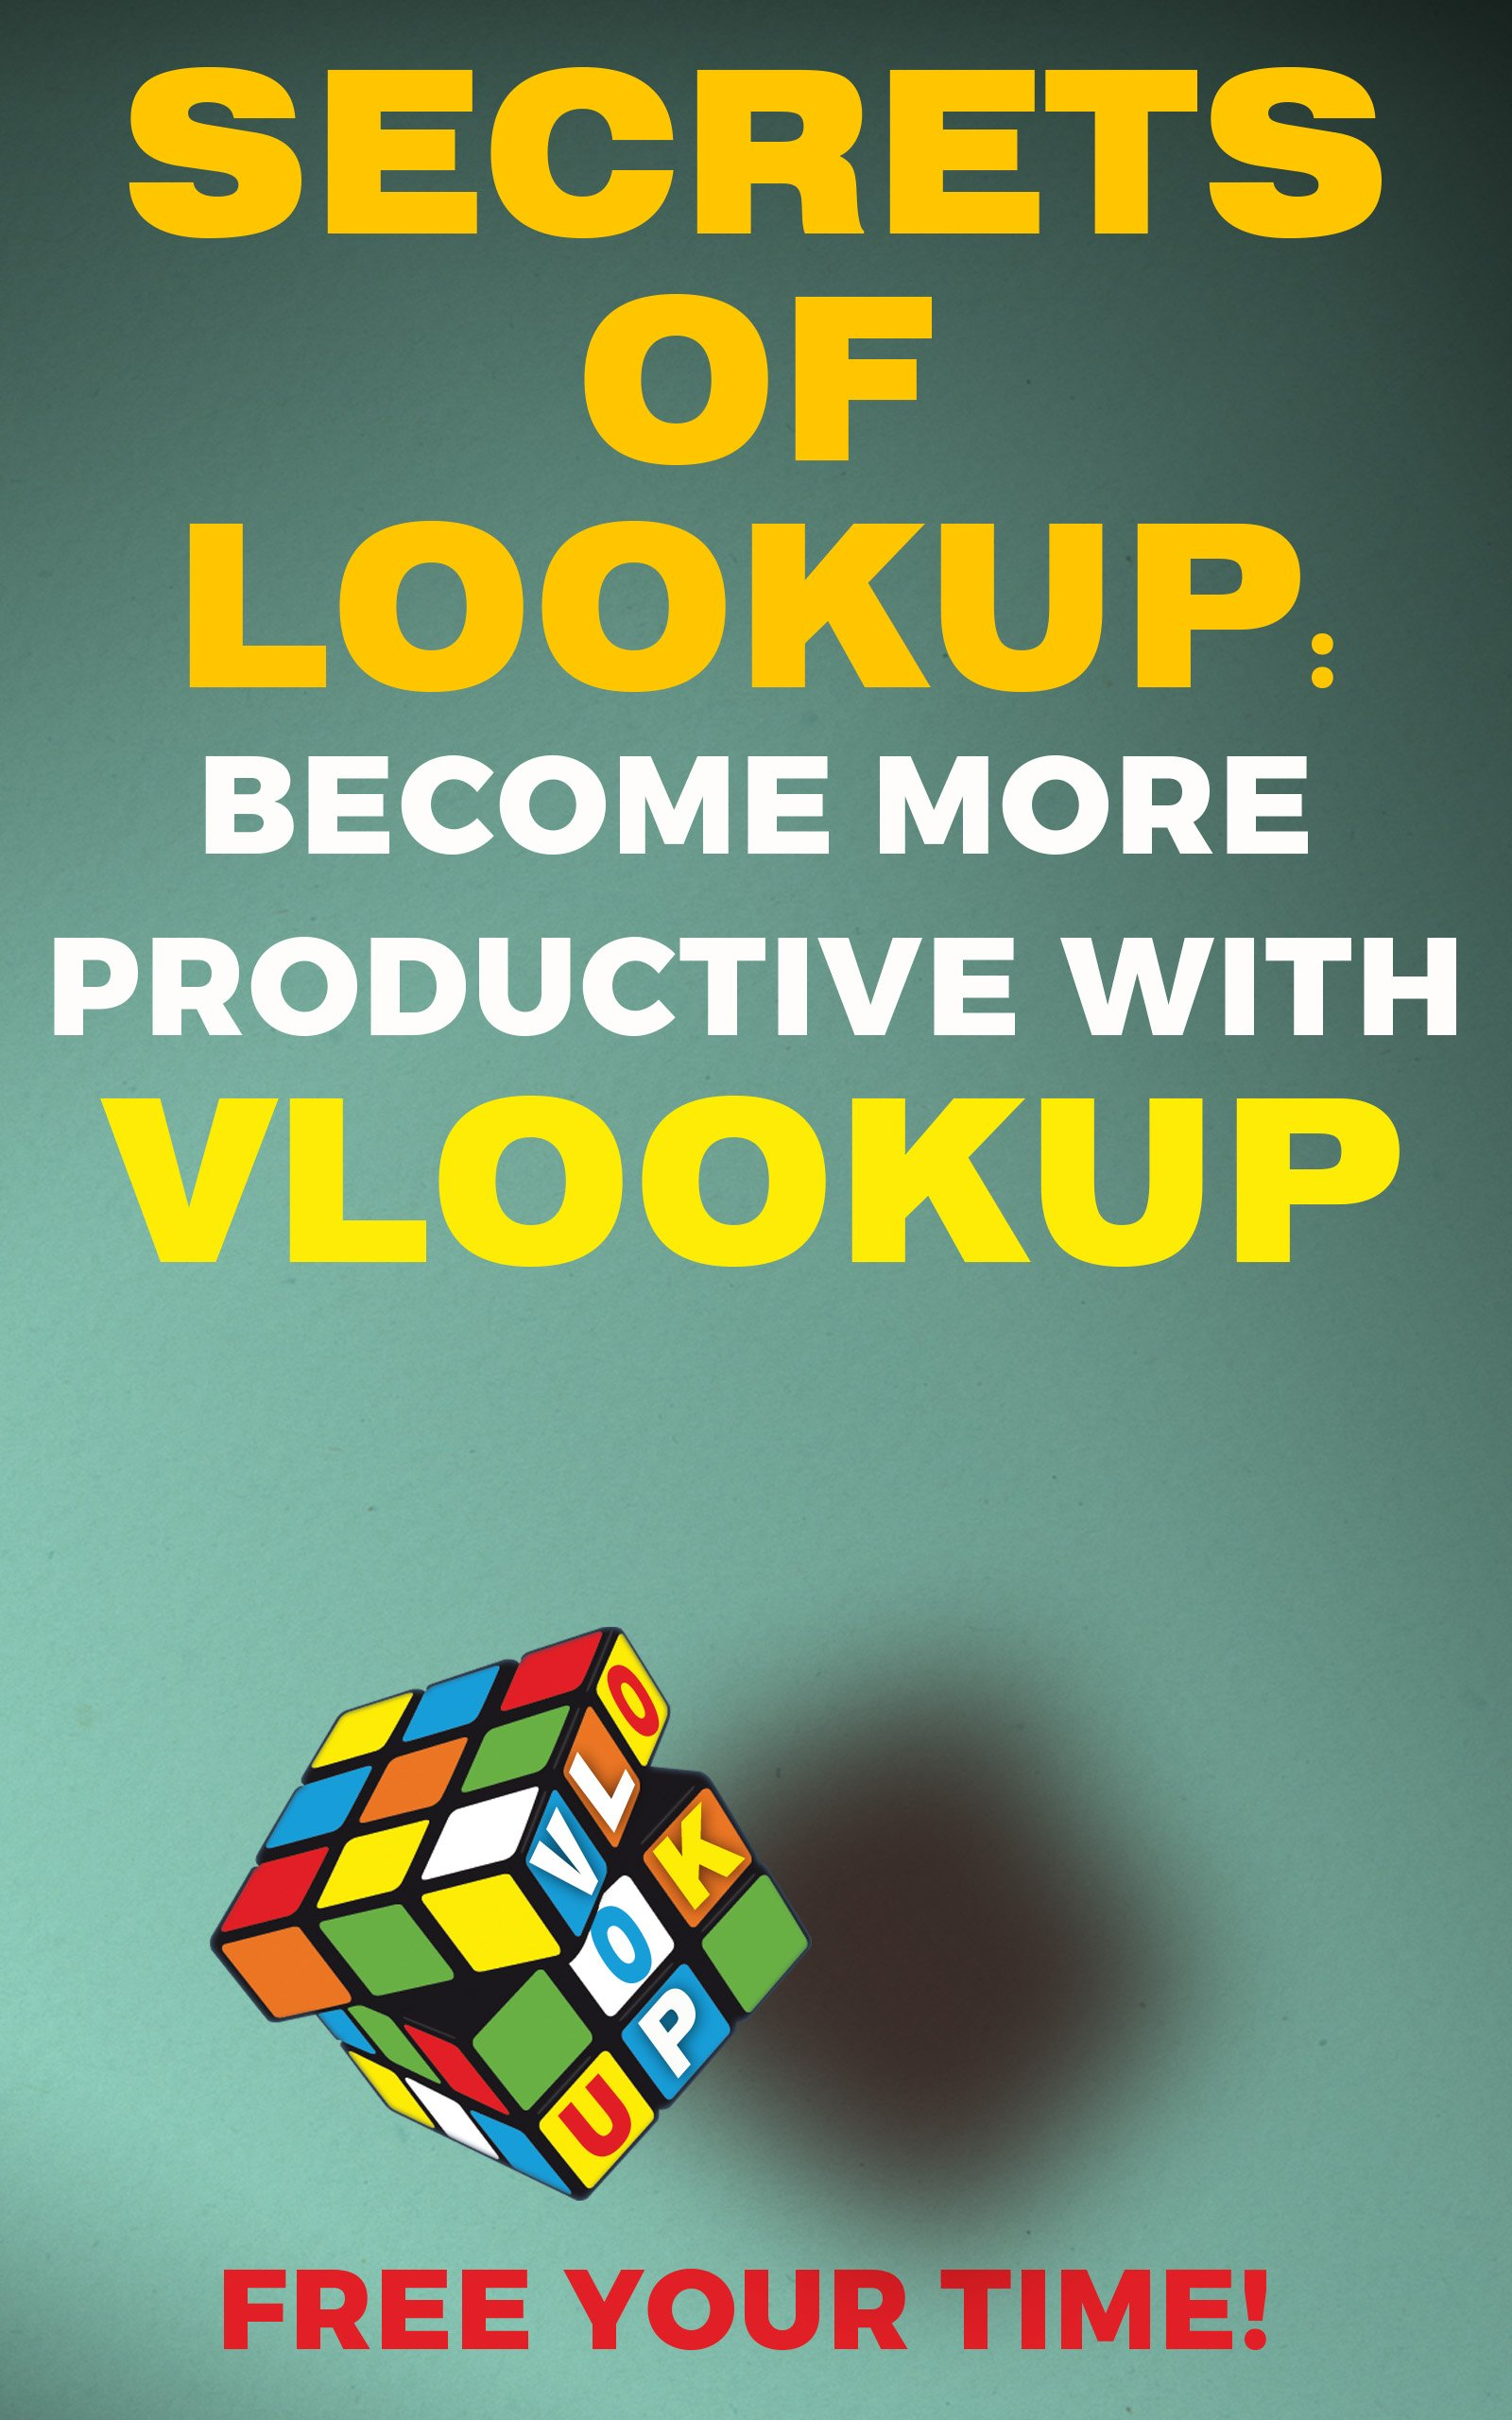 SECRETS OF LOOKUP: BECOME MORE PRODUCTIVE WITH VLOOKUP, FREE YOUR TIME! (Save Your Time With MS Excel! Book 3)